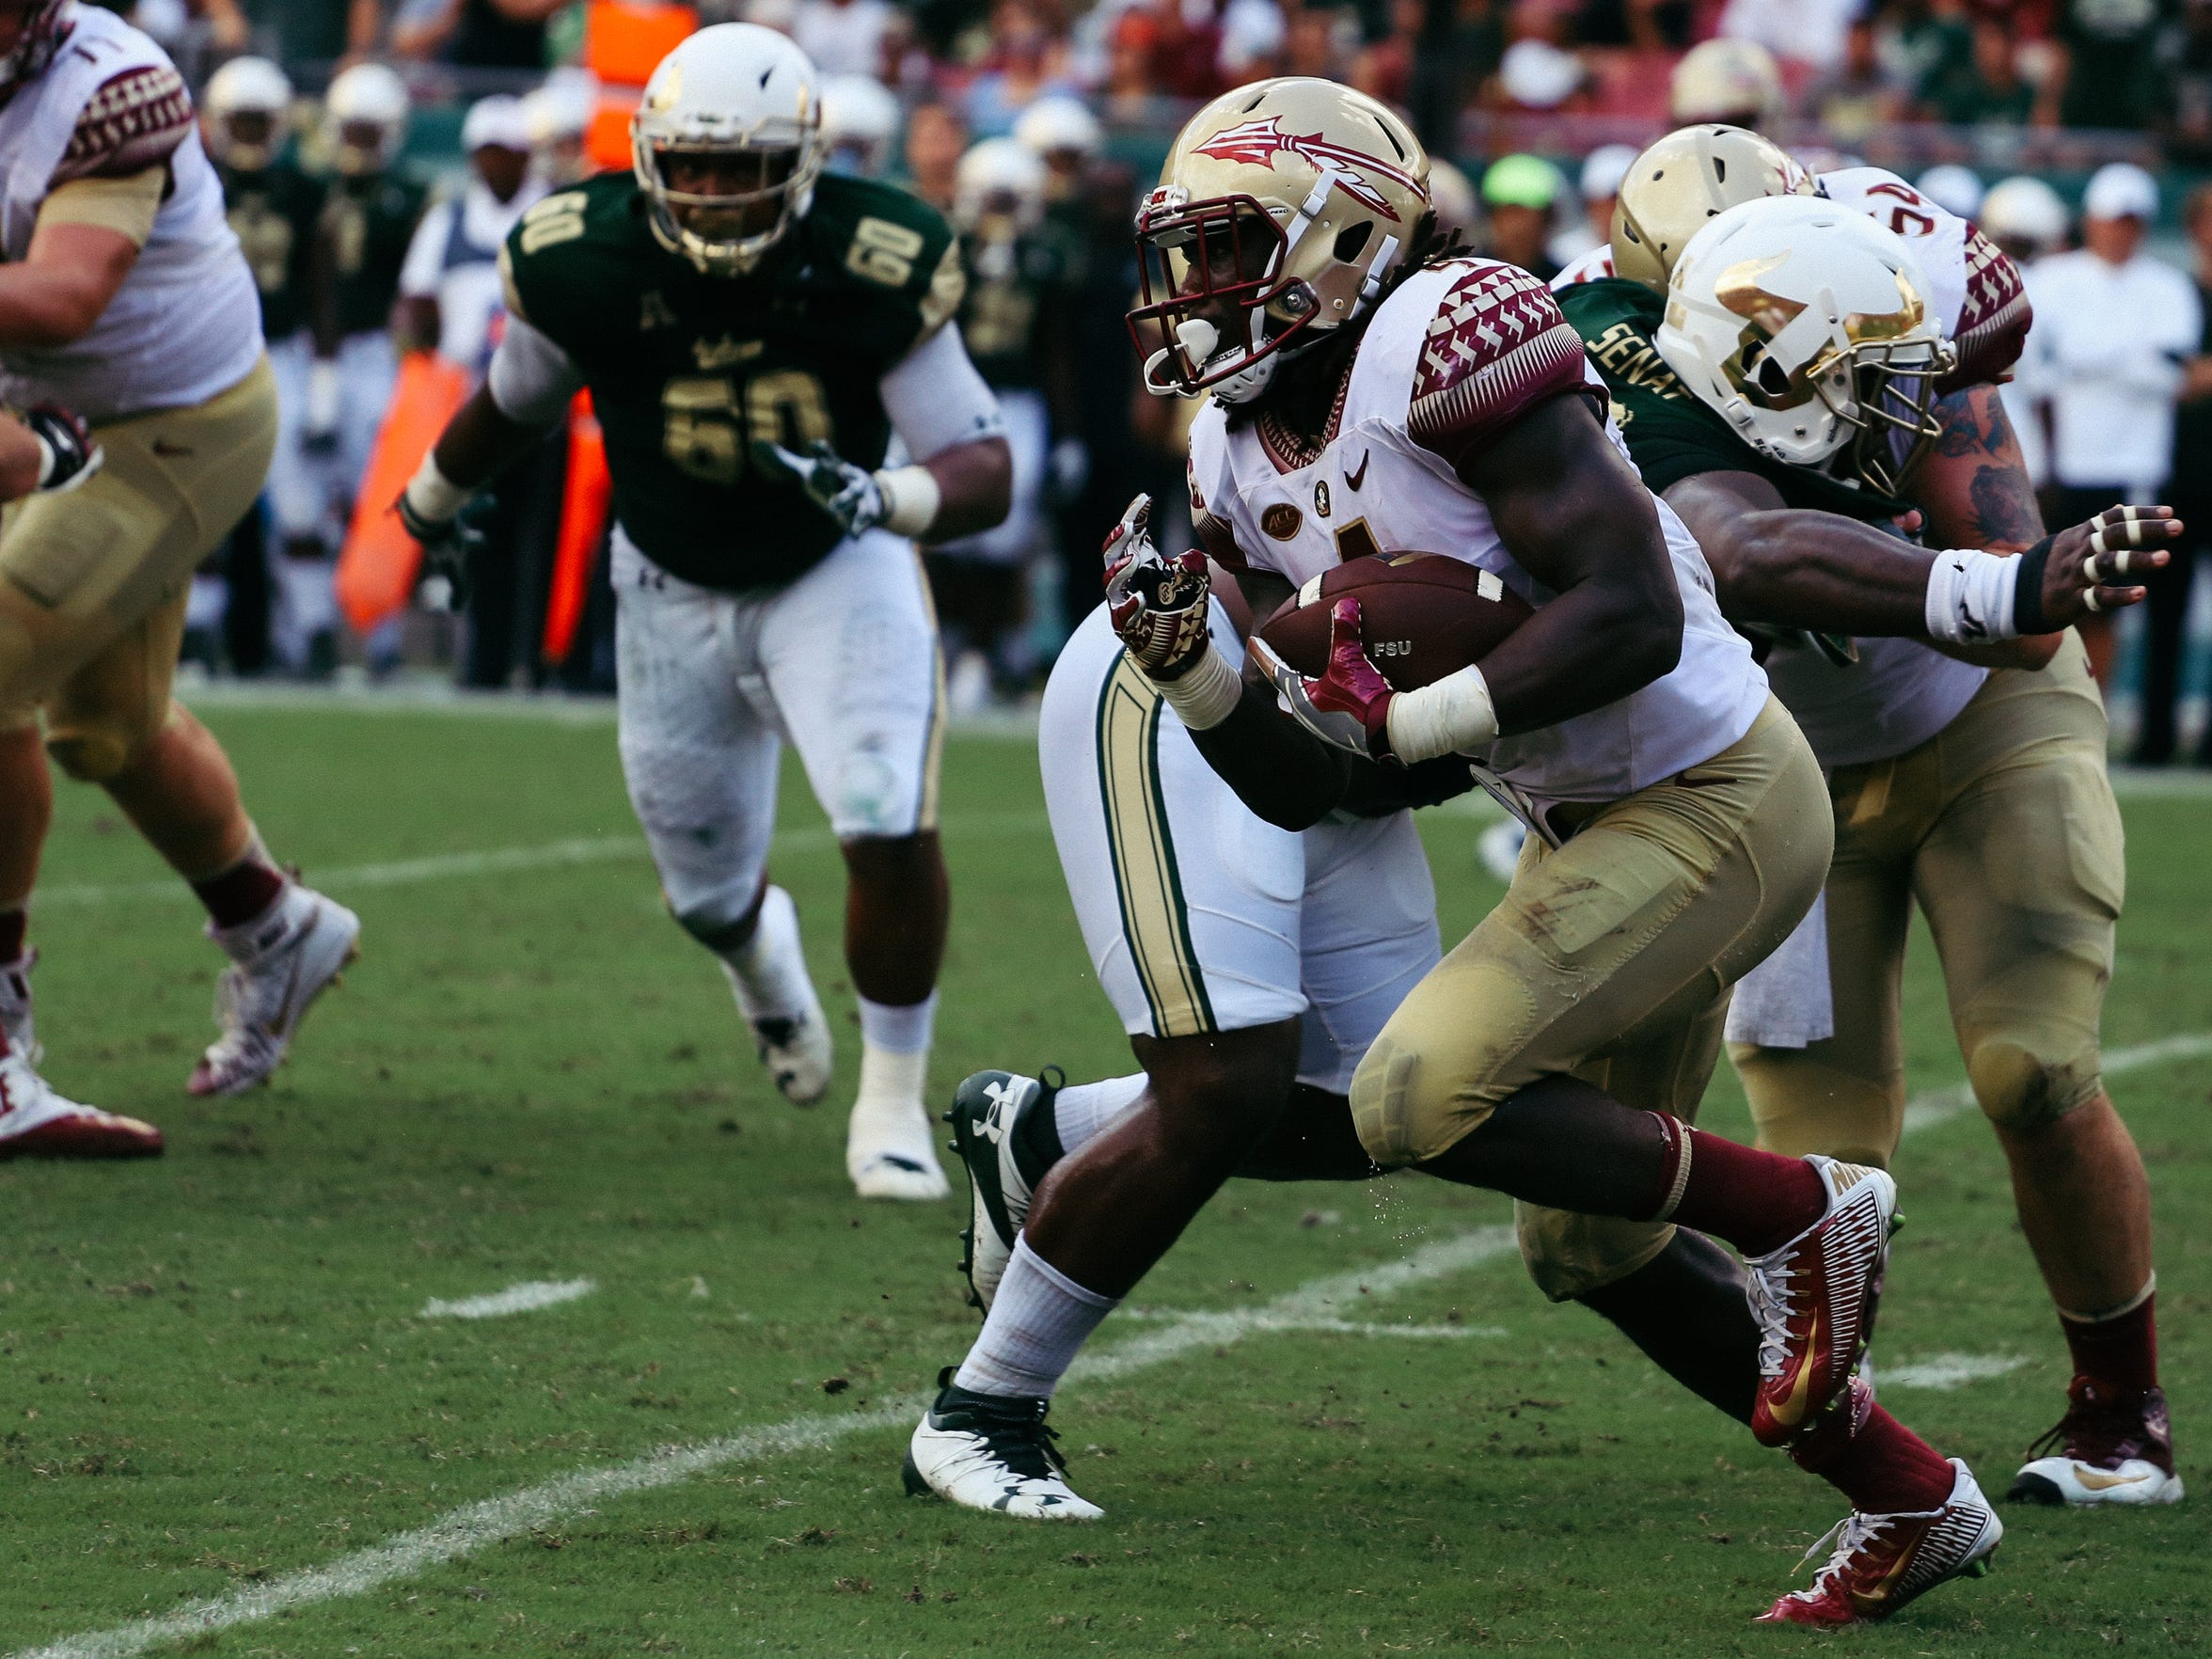 Cook rushed 28 times for 267 yards and a touchdown against USF, the second most all-time at FSU for a single-game performance.